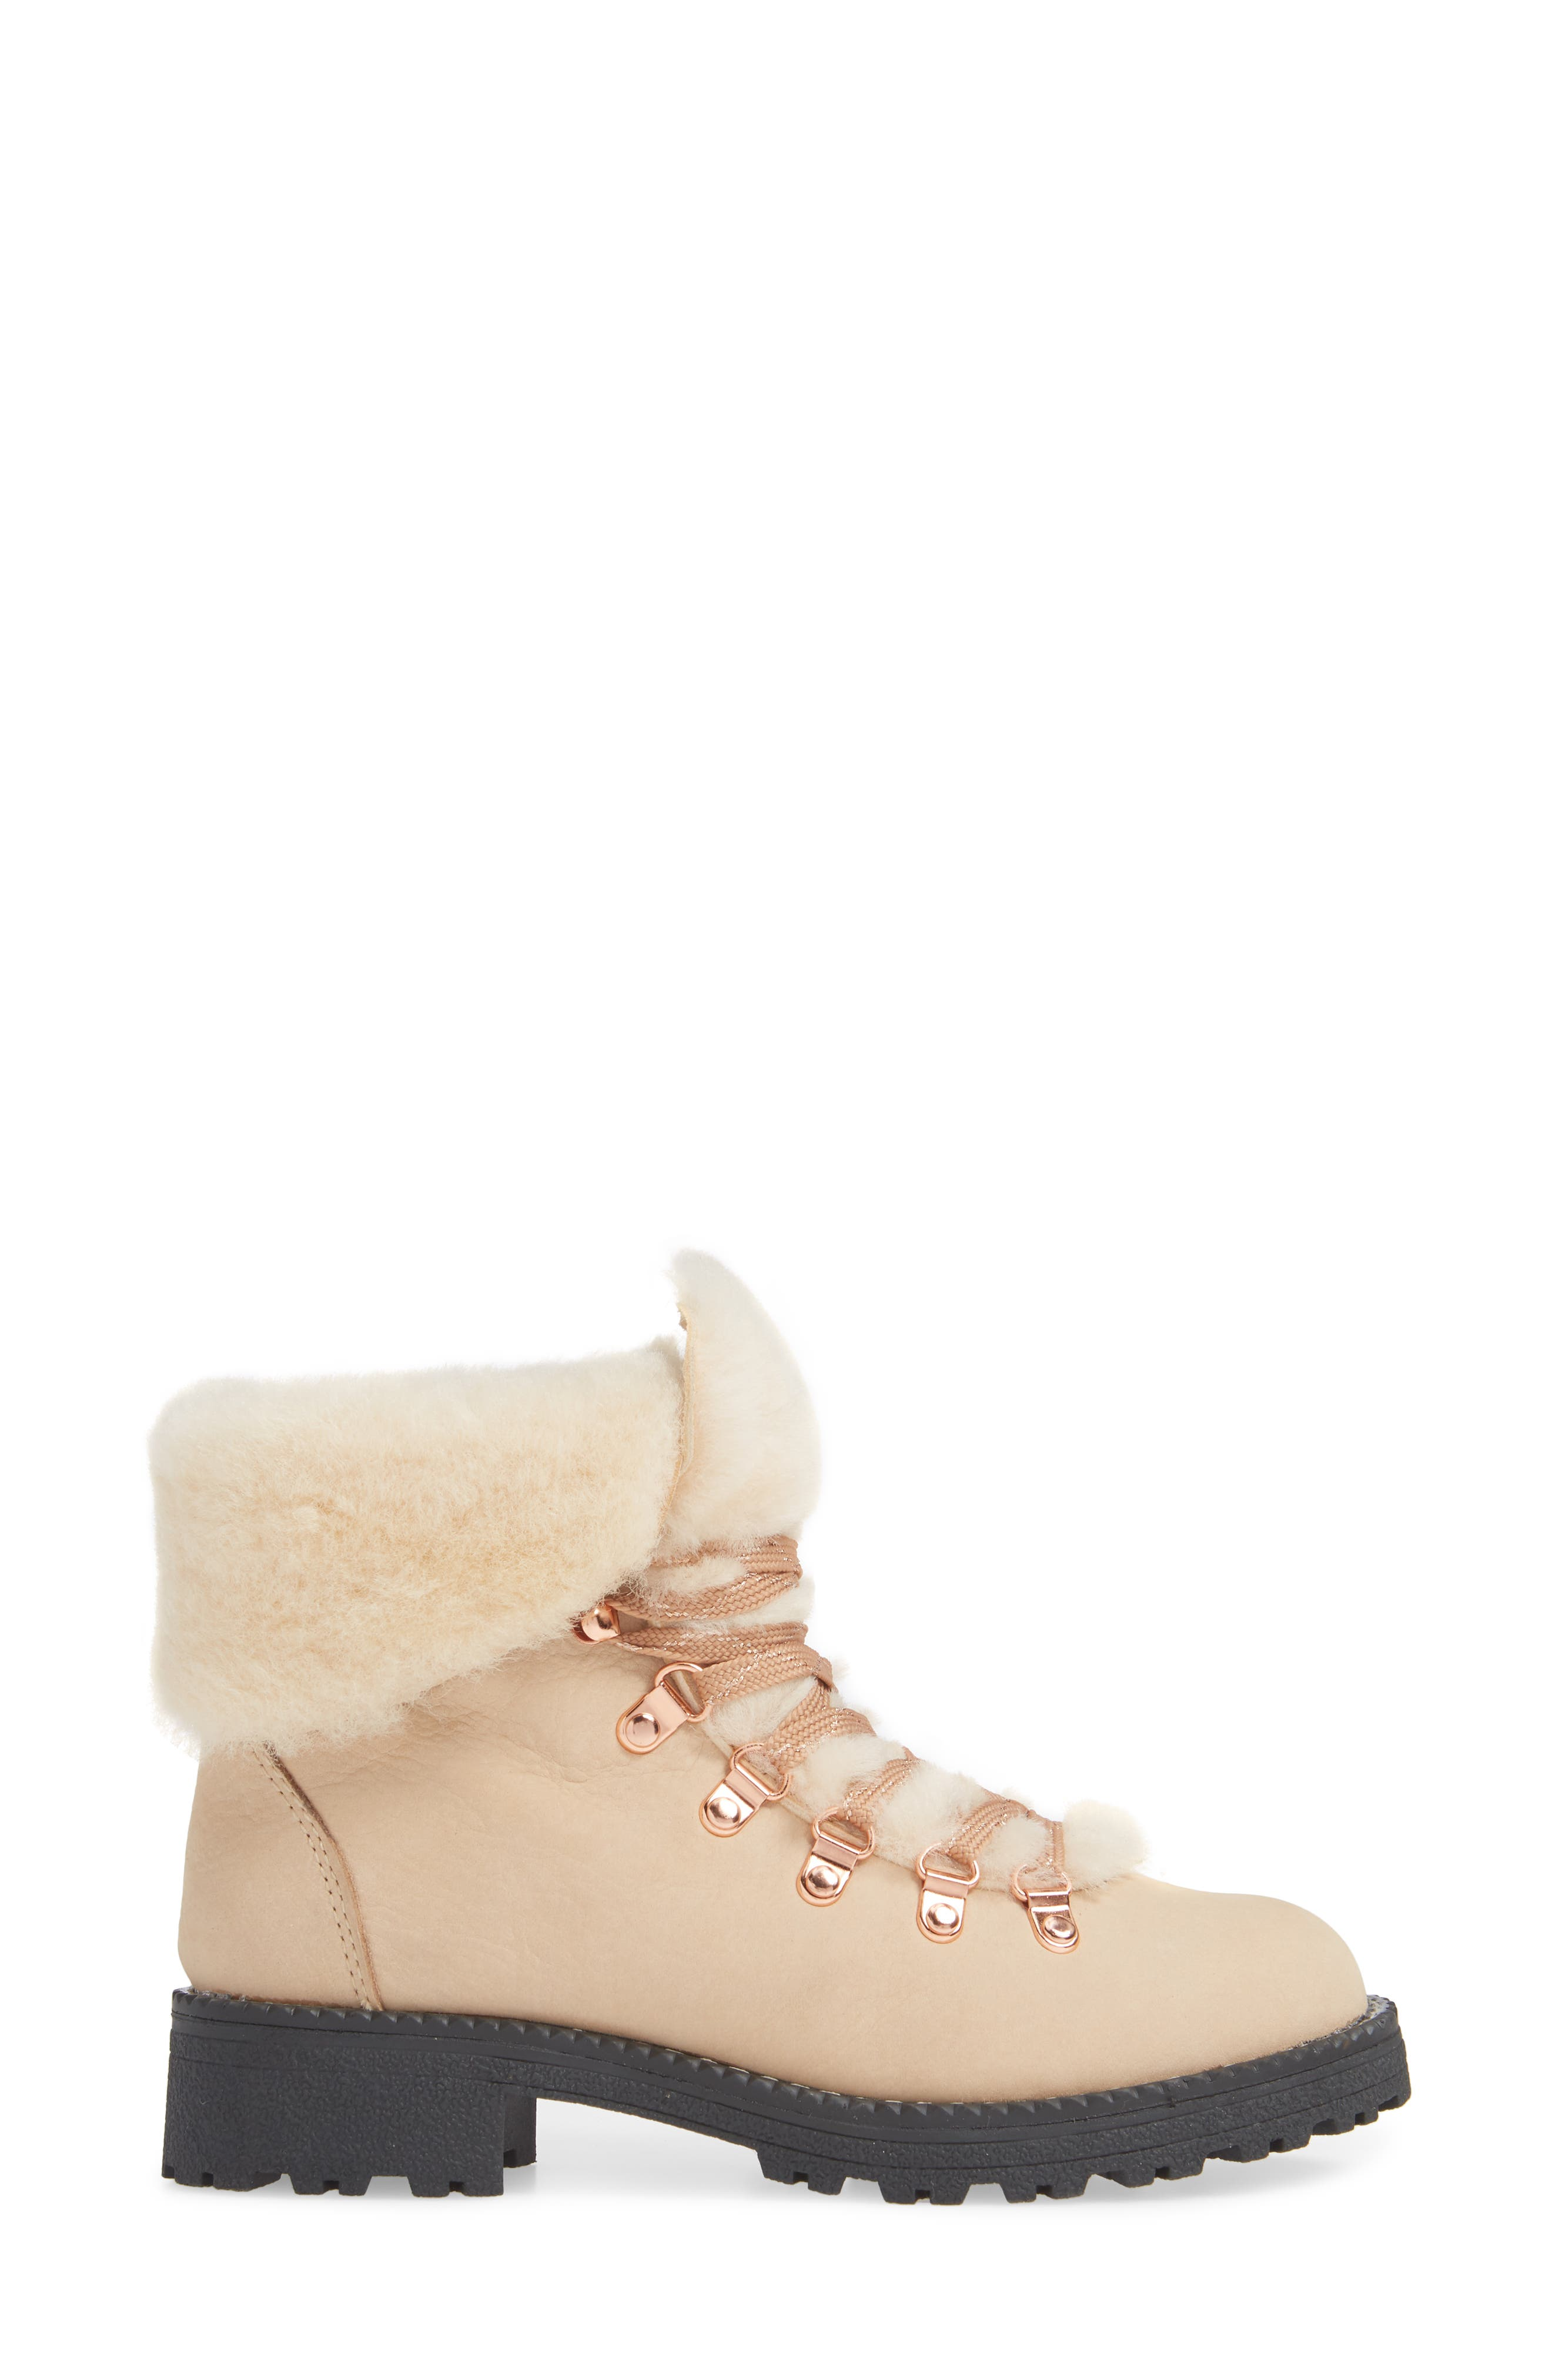 Nordic Genuine Shearling Cuff Winter Boot,                             Alternate thumbnail 3, color,                             DUNE LEATHER